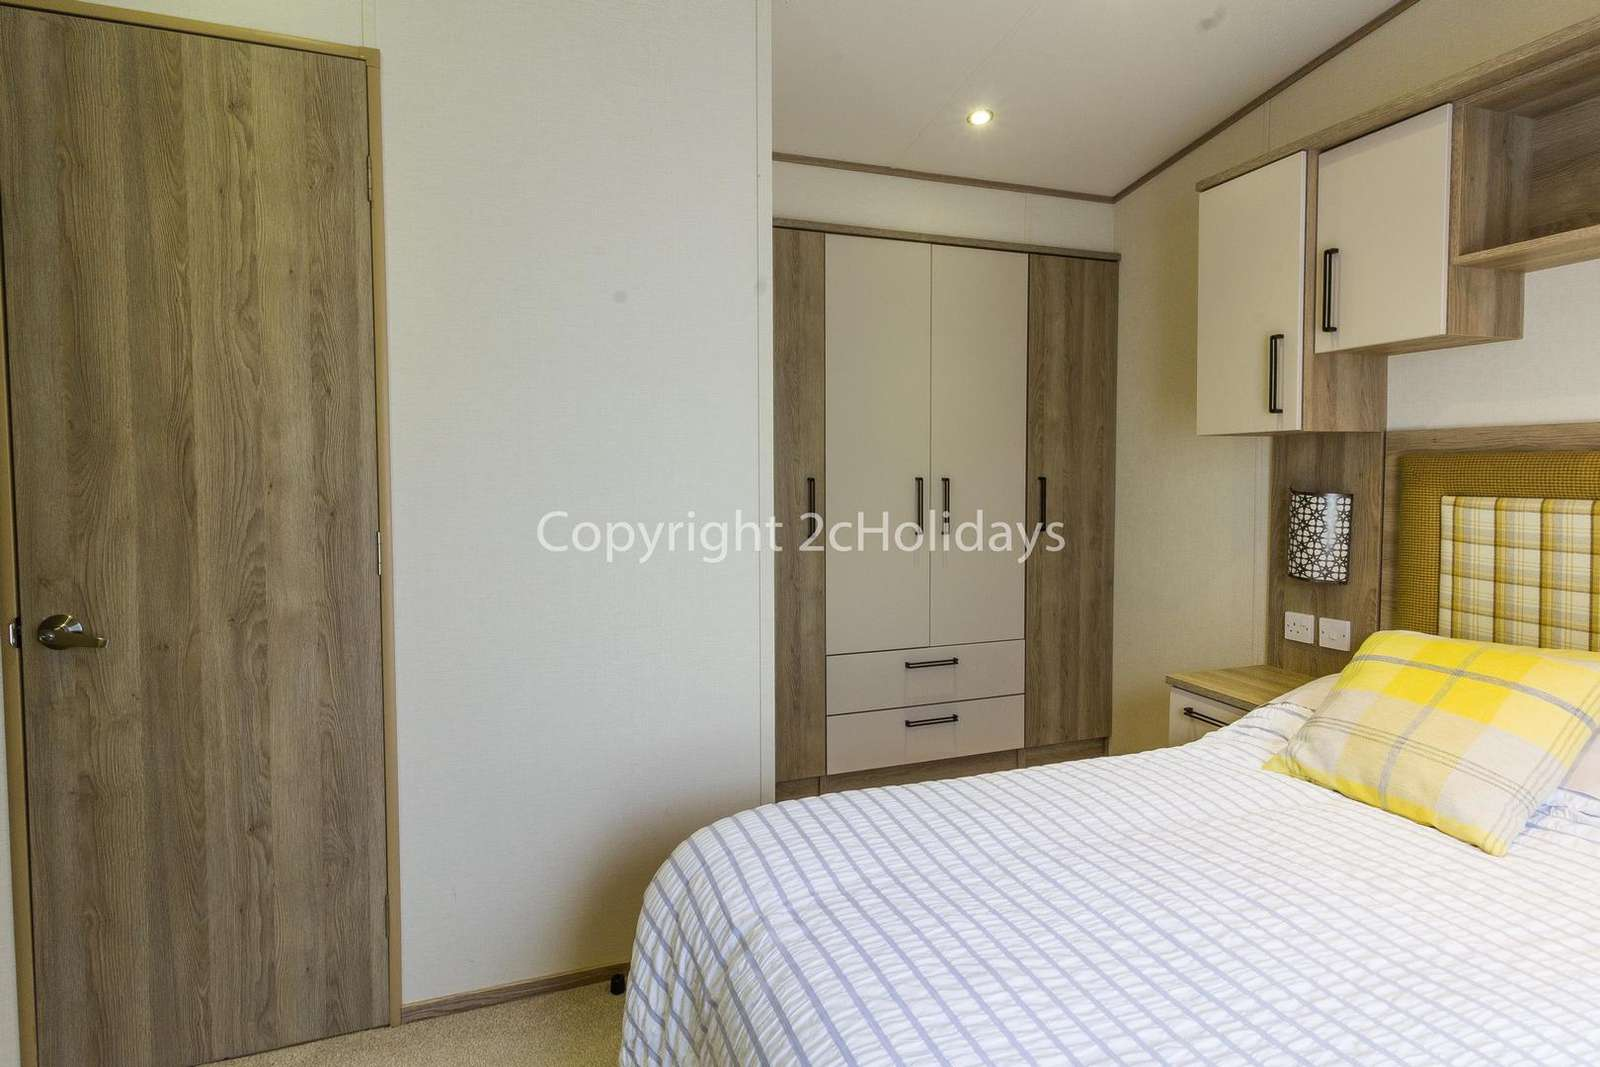 You can find plenty or storage in this master bedroom